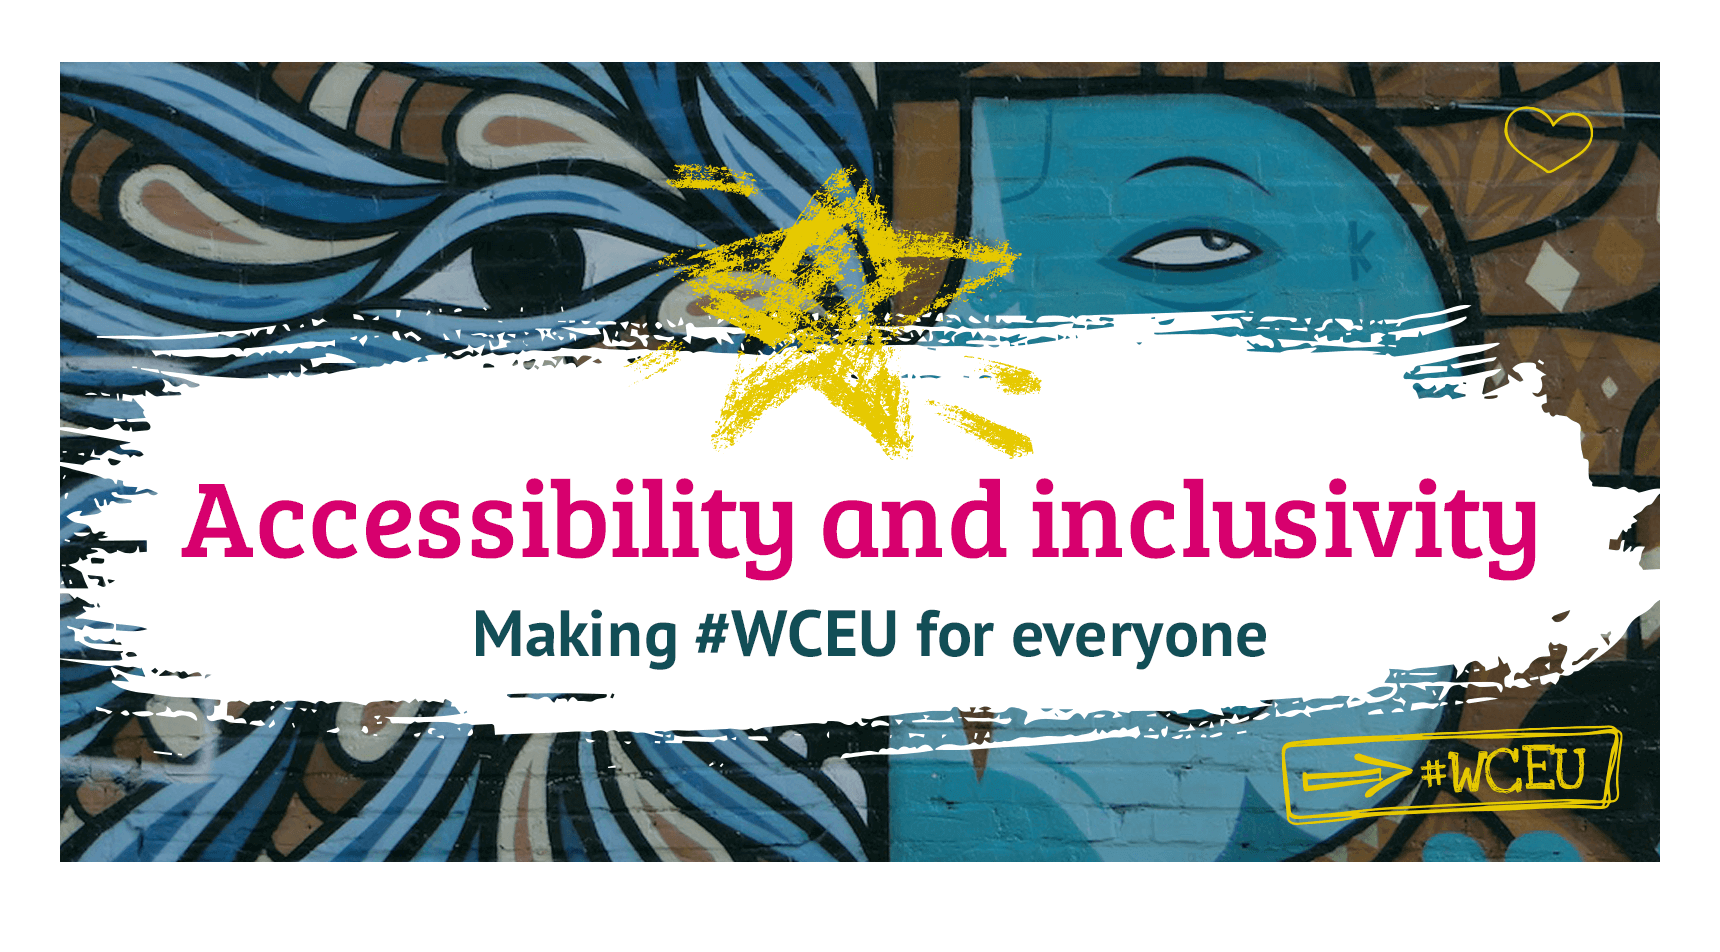 The WordCamp Europe 2019 Accessibility and Inclusivity page.